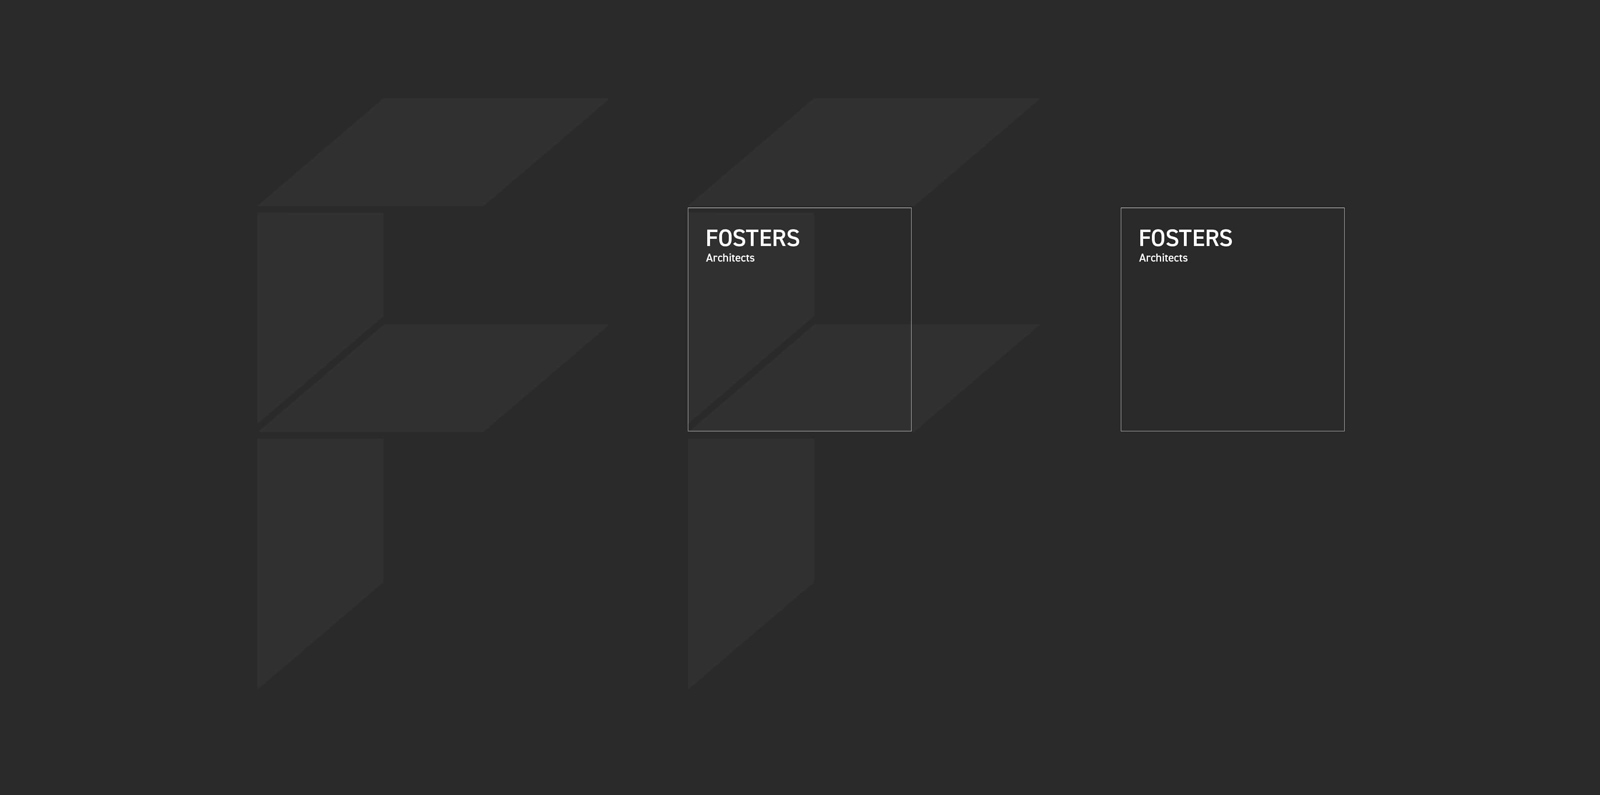 fosters-architects-presentation-10-cropped.jpg